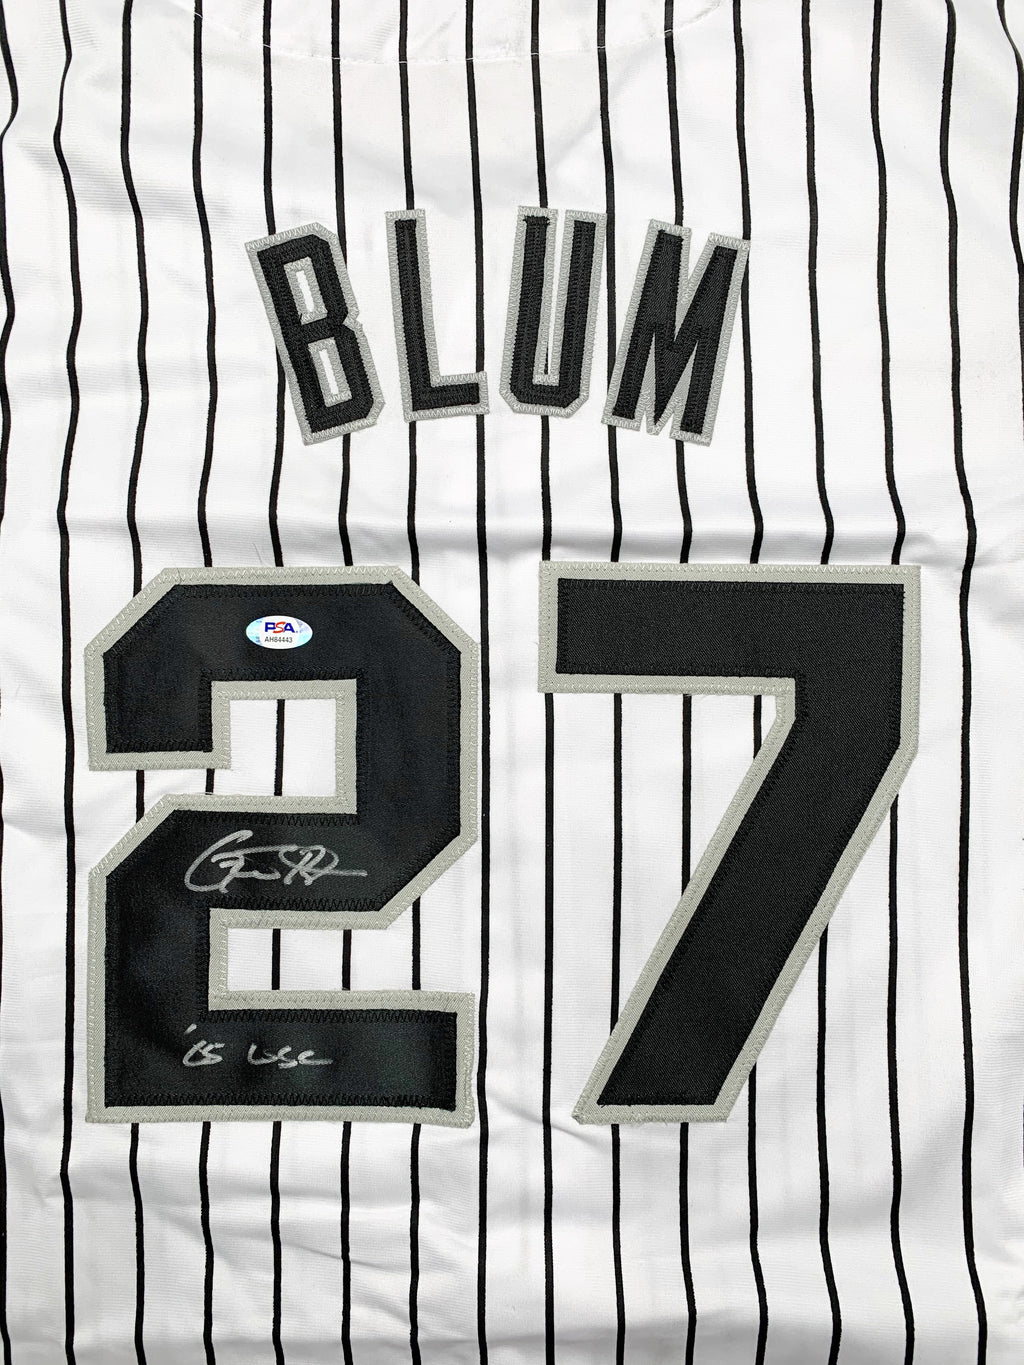 Geoff Blum autographed signed inscribed jersey MLB Chicago White Sox PSA COA - JAG Sports Marketing